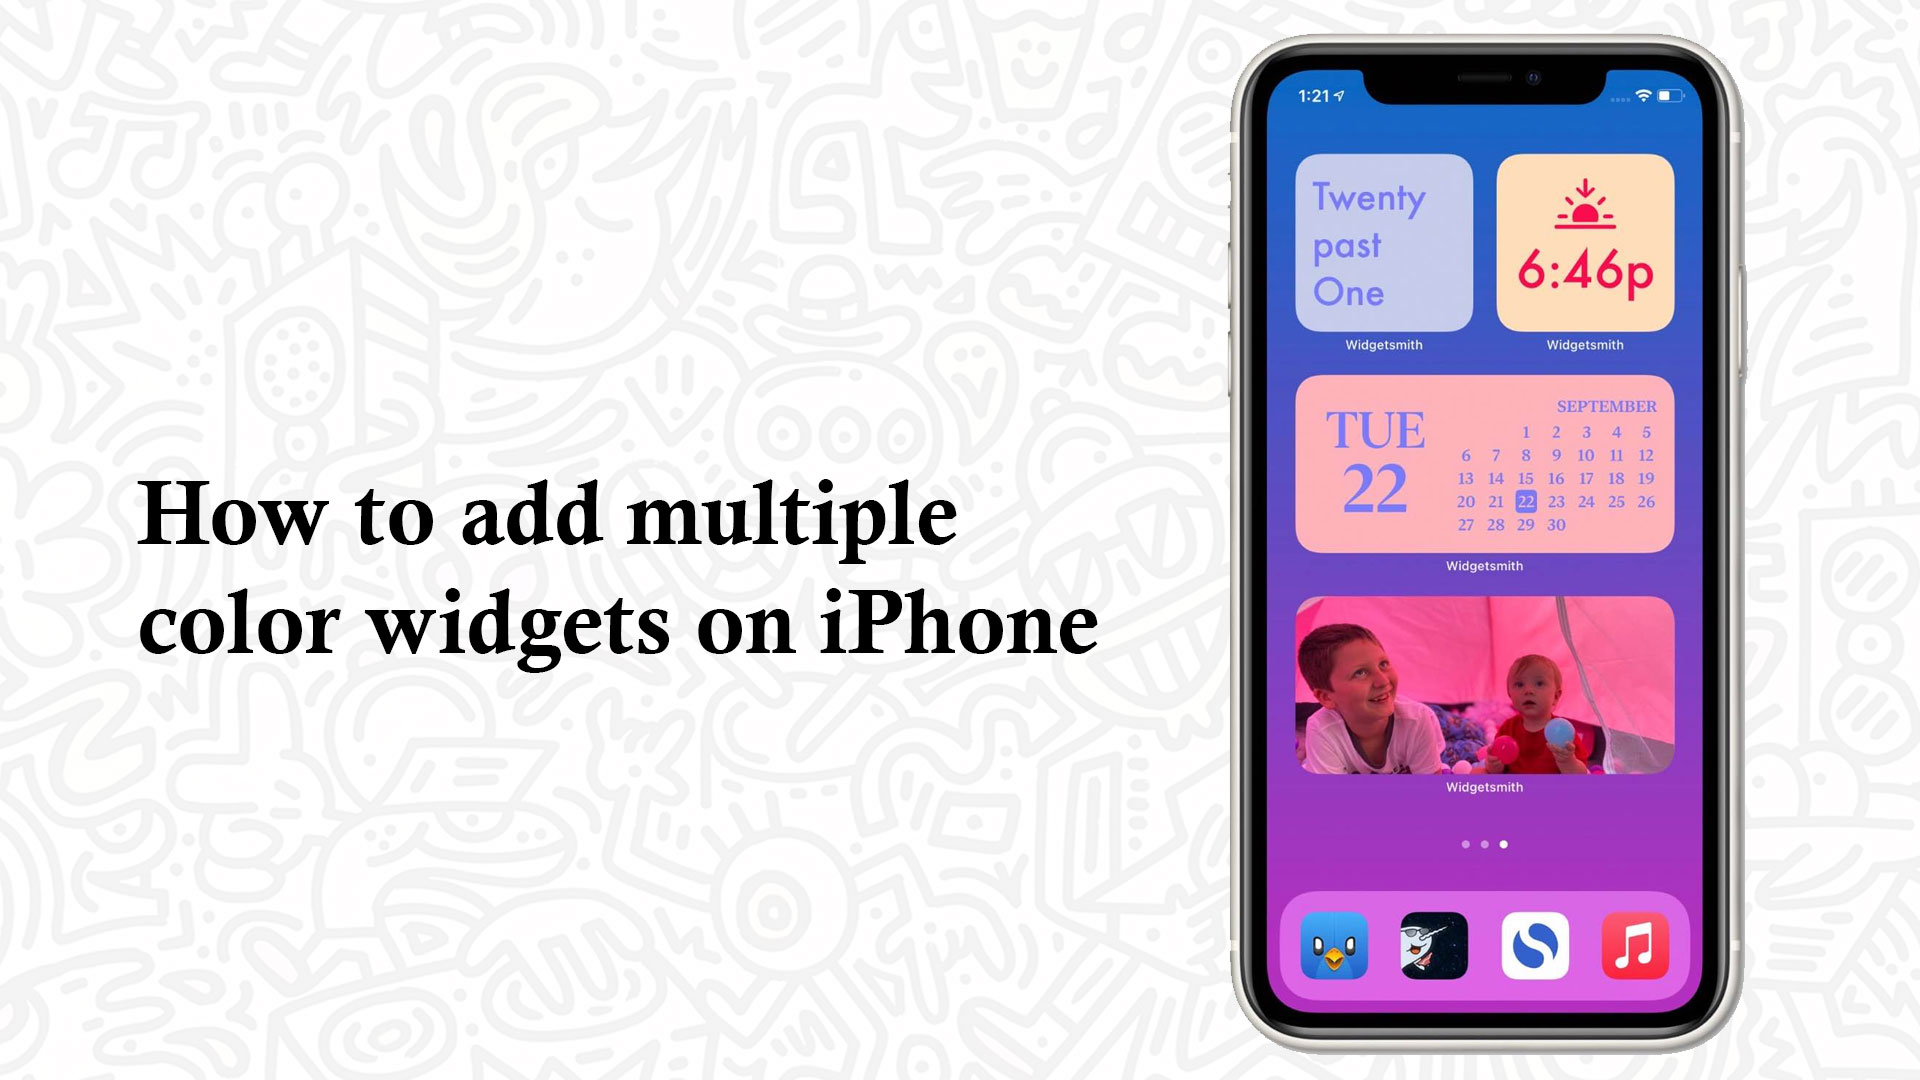 How to add multiple color widgets on iPhone